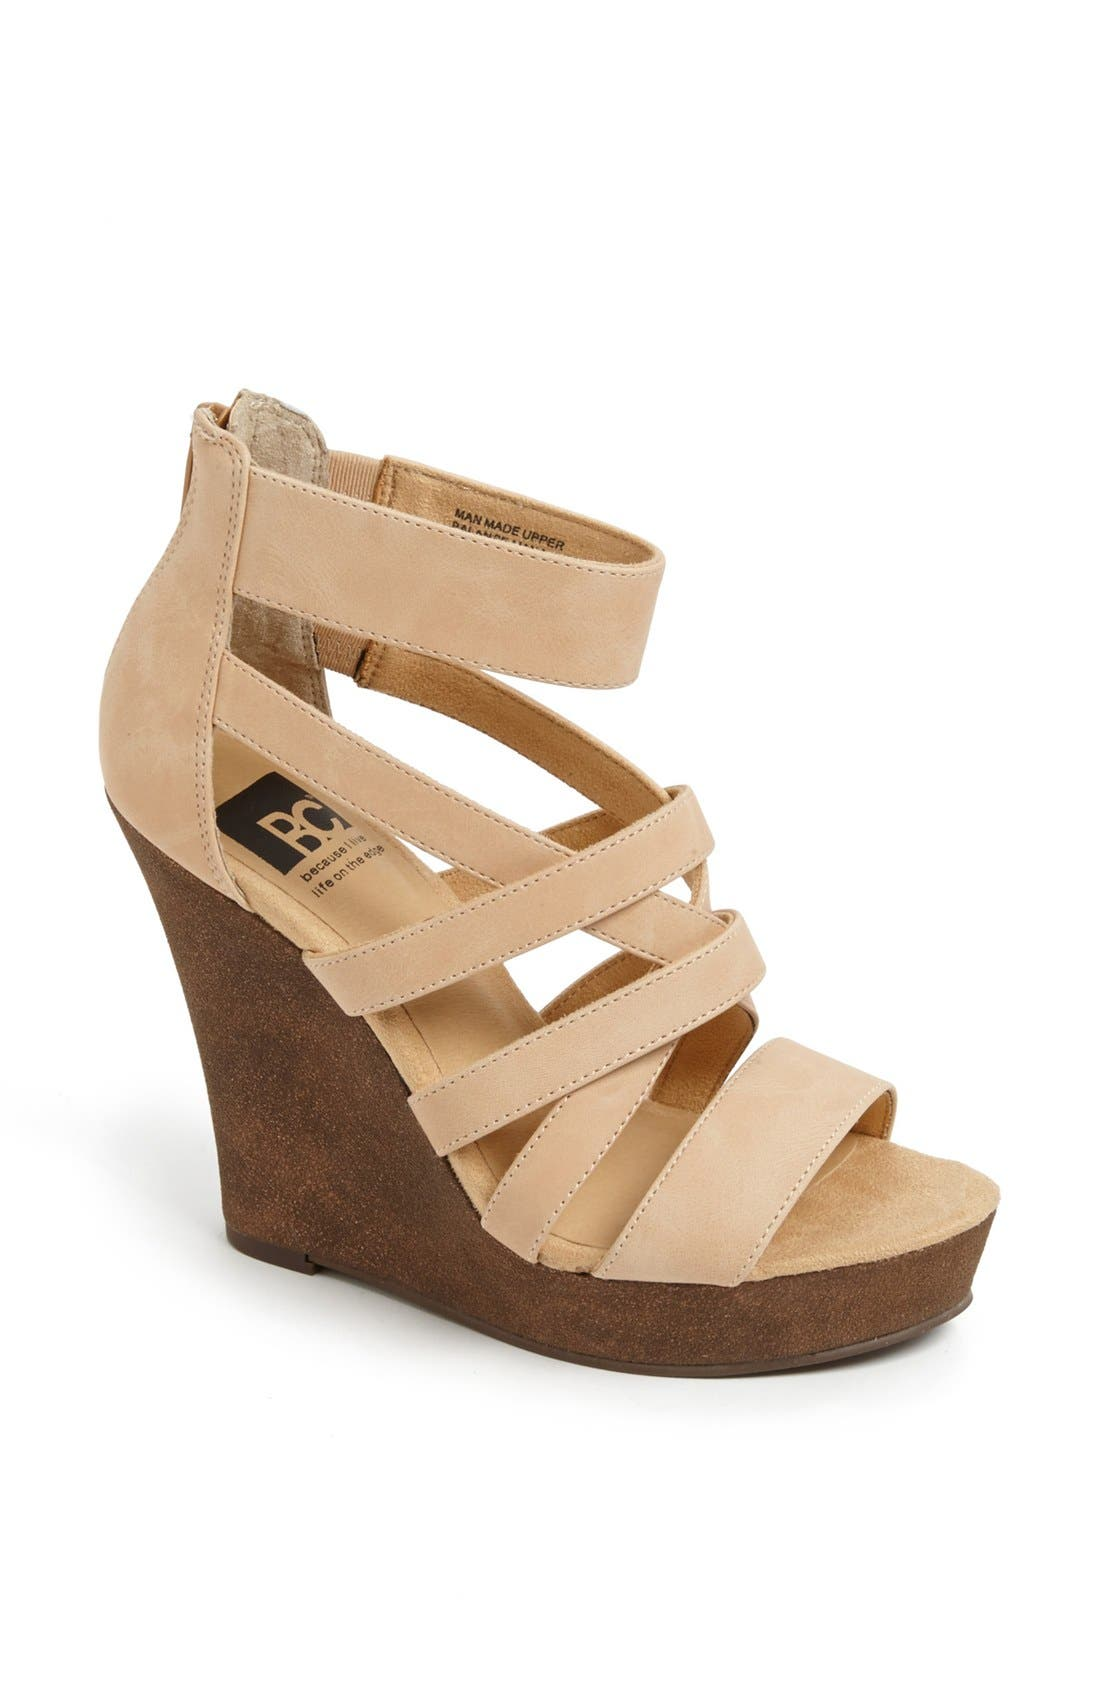 Main Image - BC Footwear 'Tell You What' Wedge Sandal